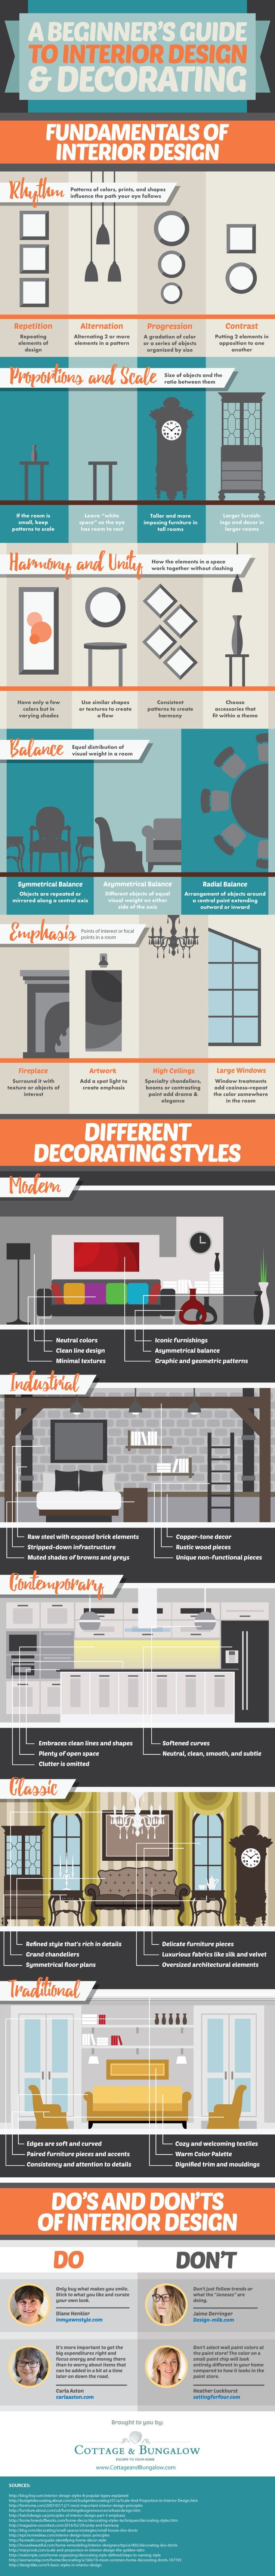 Interior Design Advice Do's And Don'ts Every Beginner Should Know